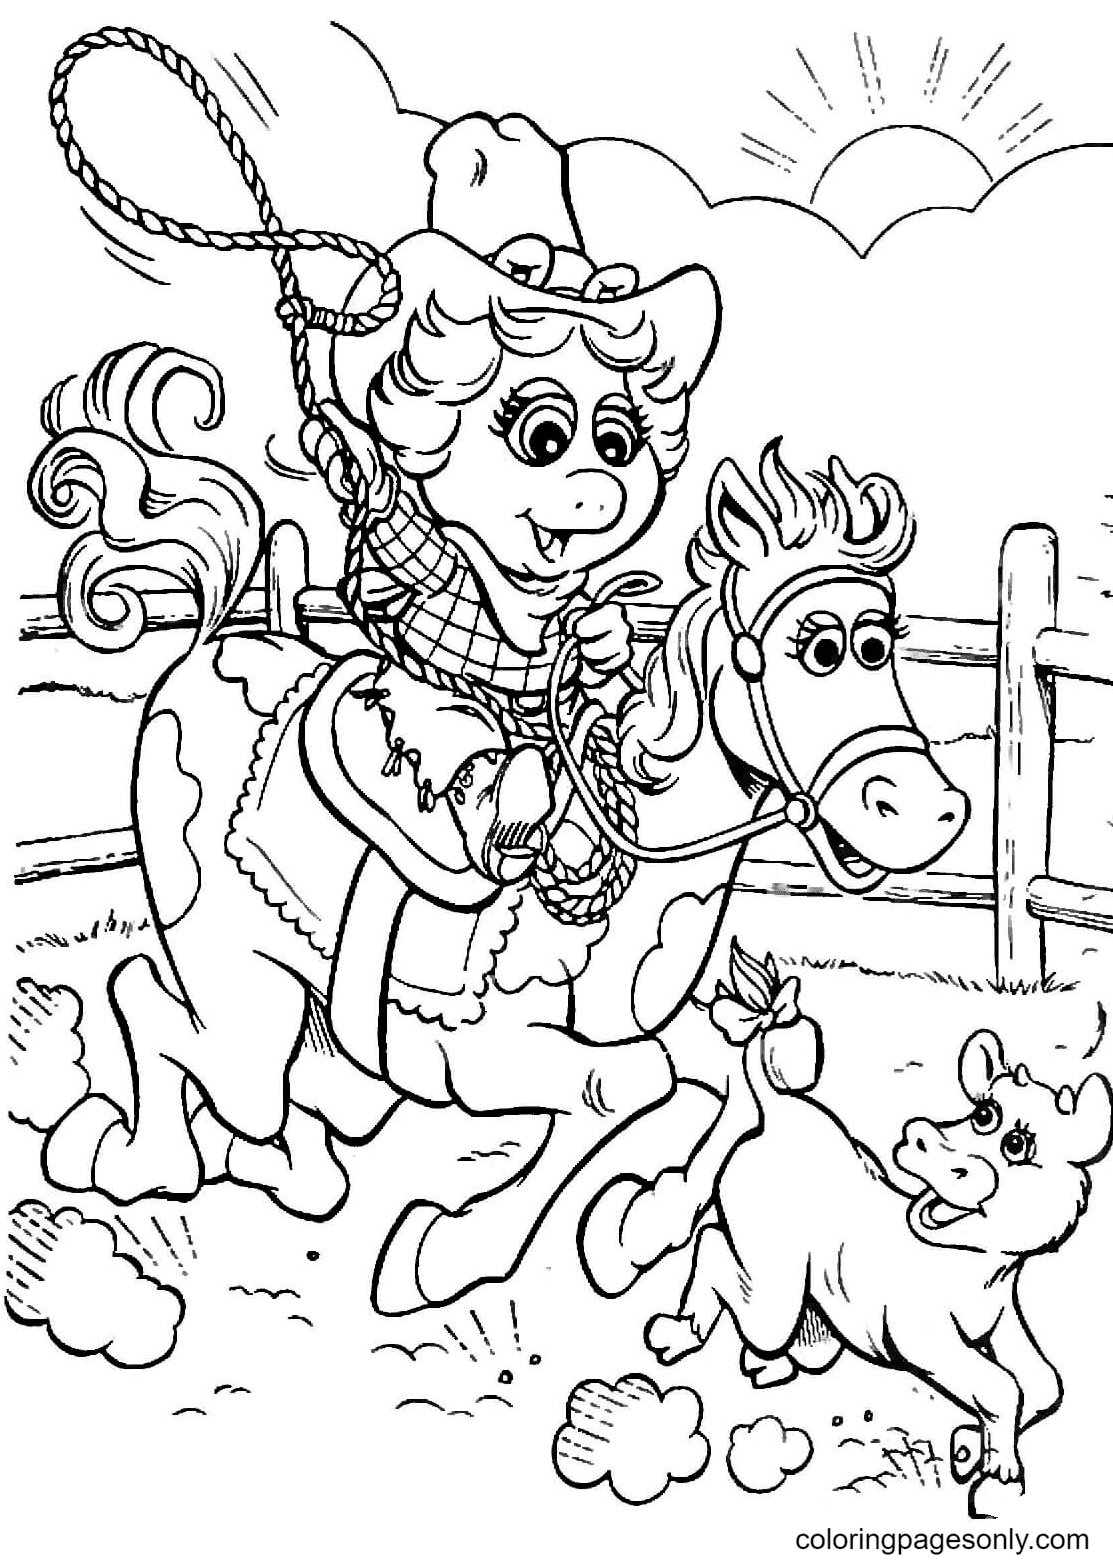 Miss Piggy cowgirl Coloring Page